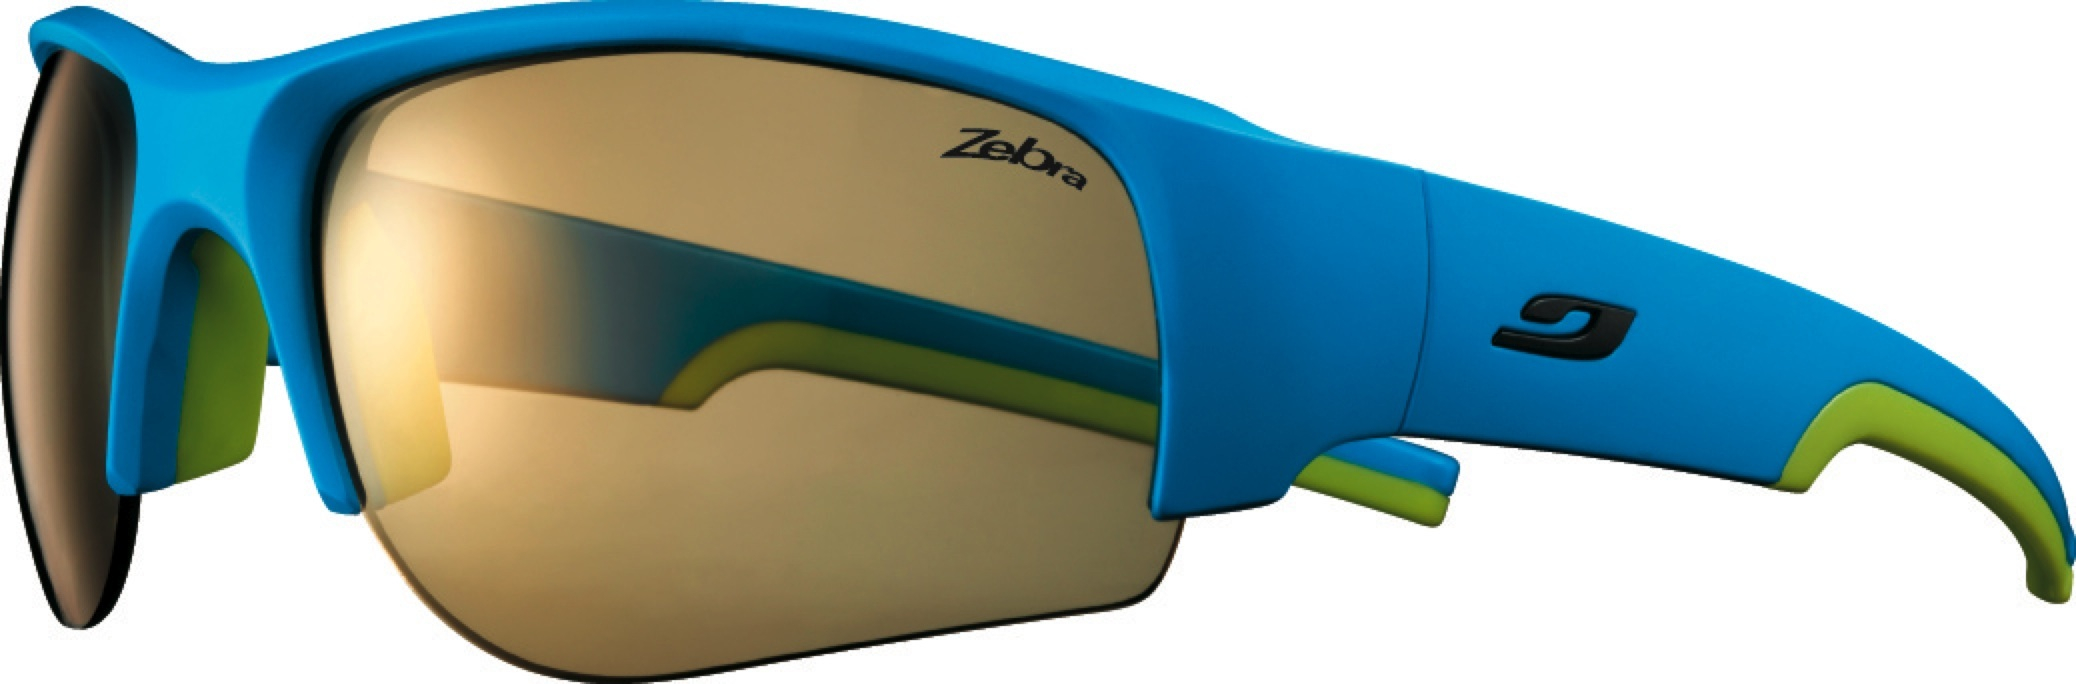 Julbo's new Dust